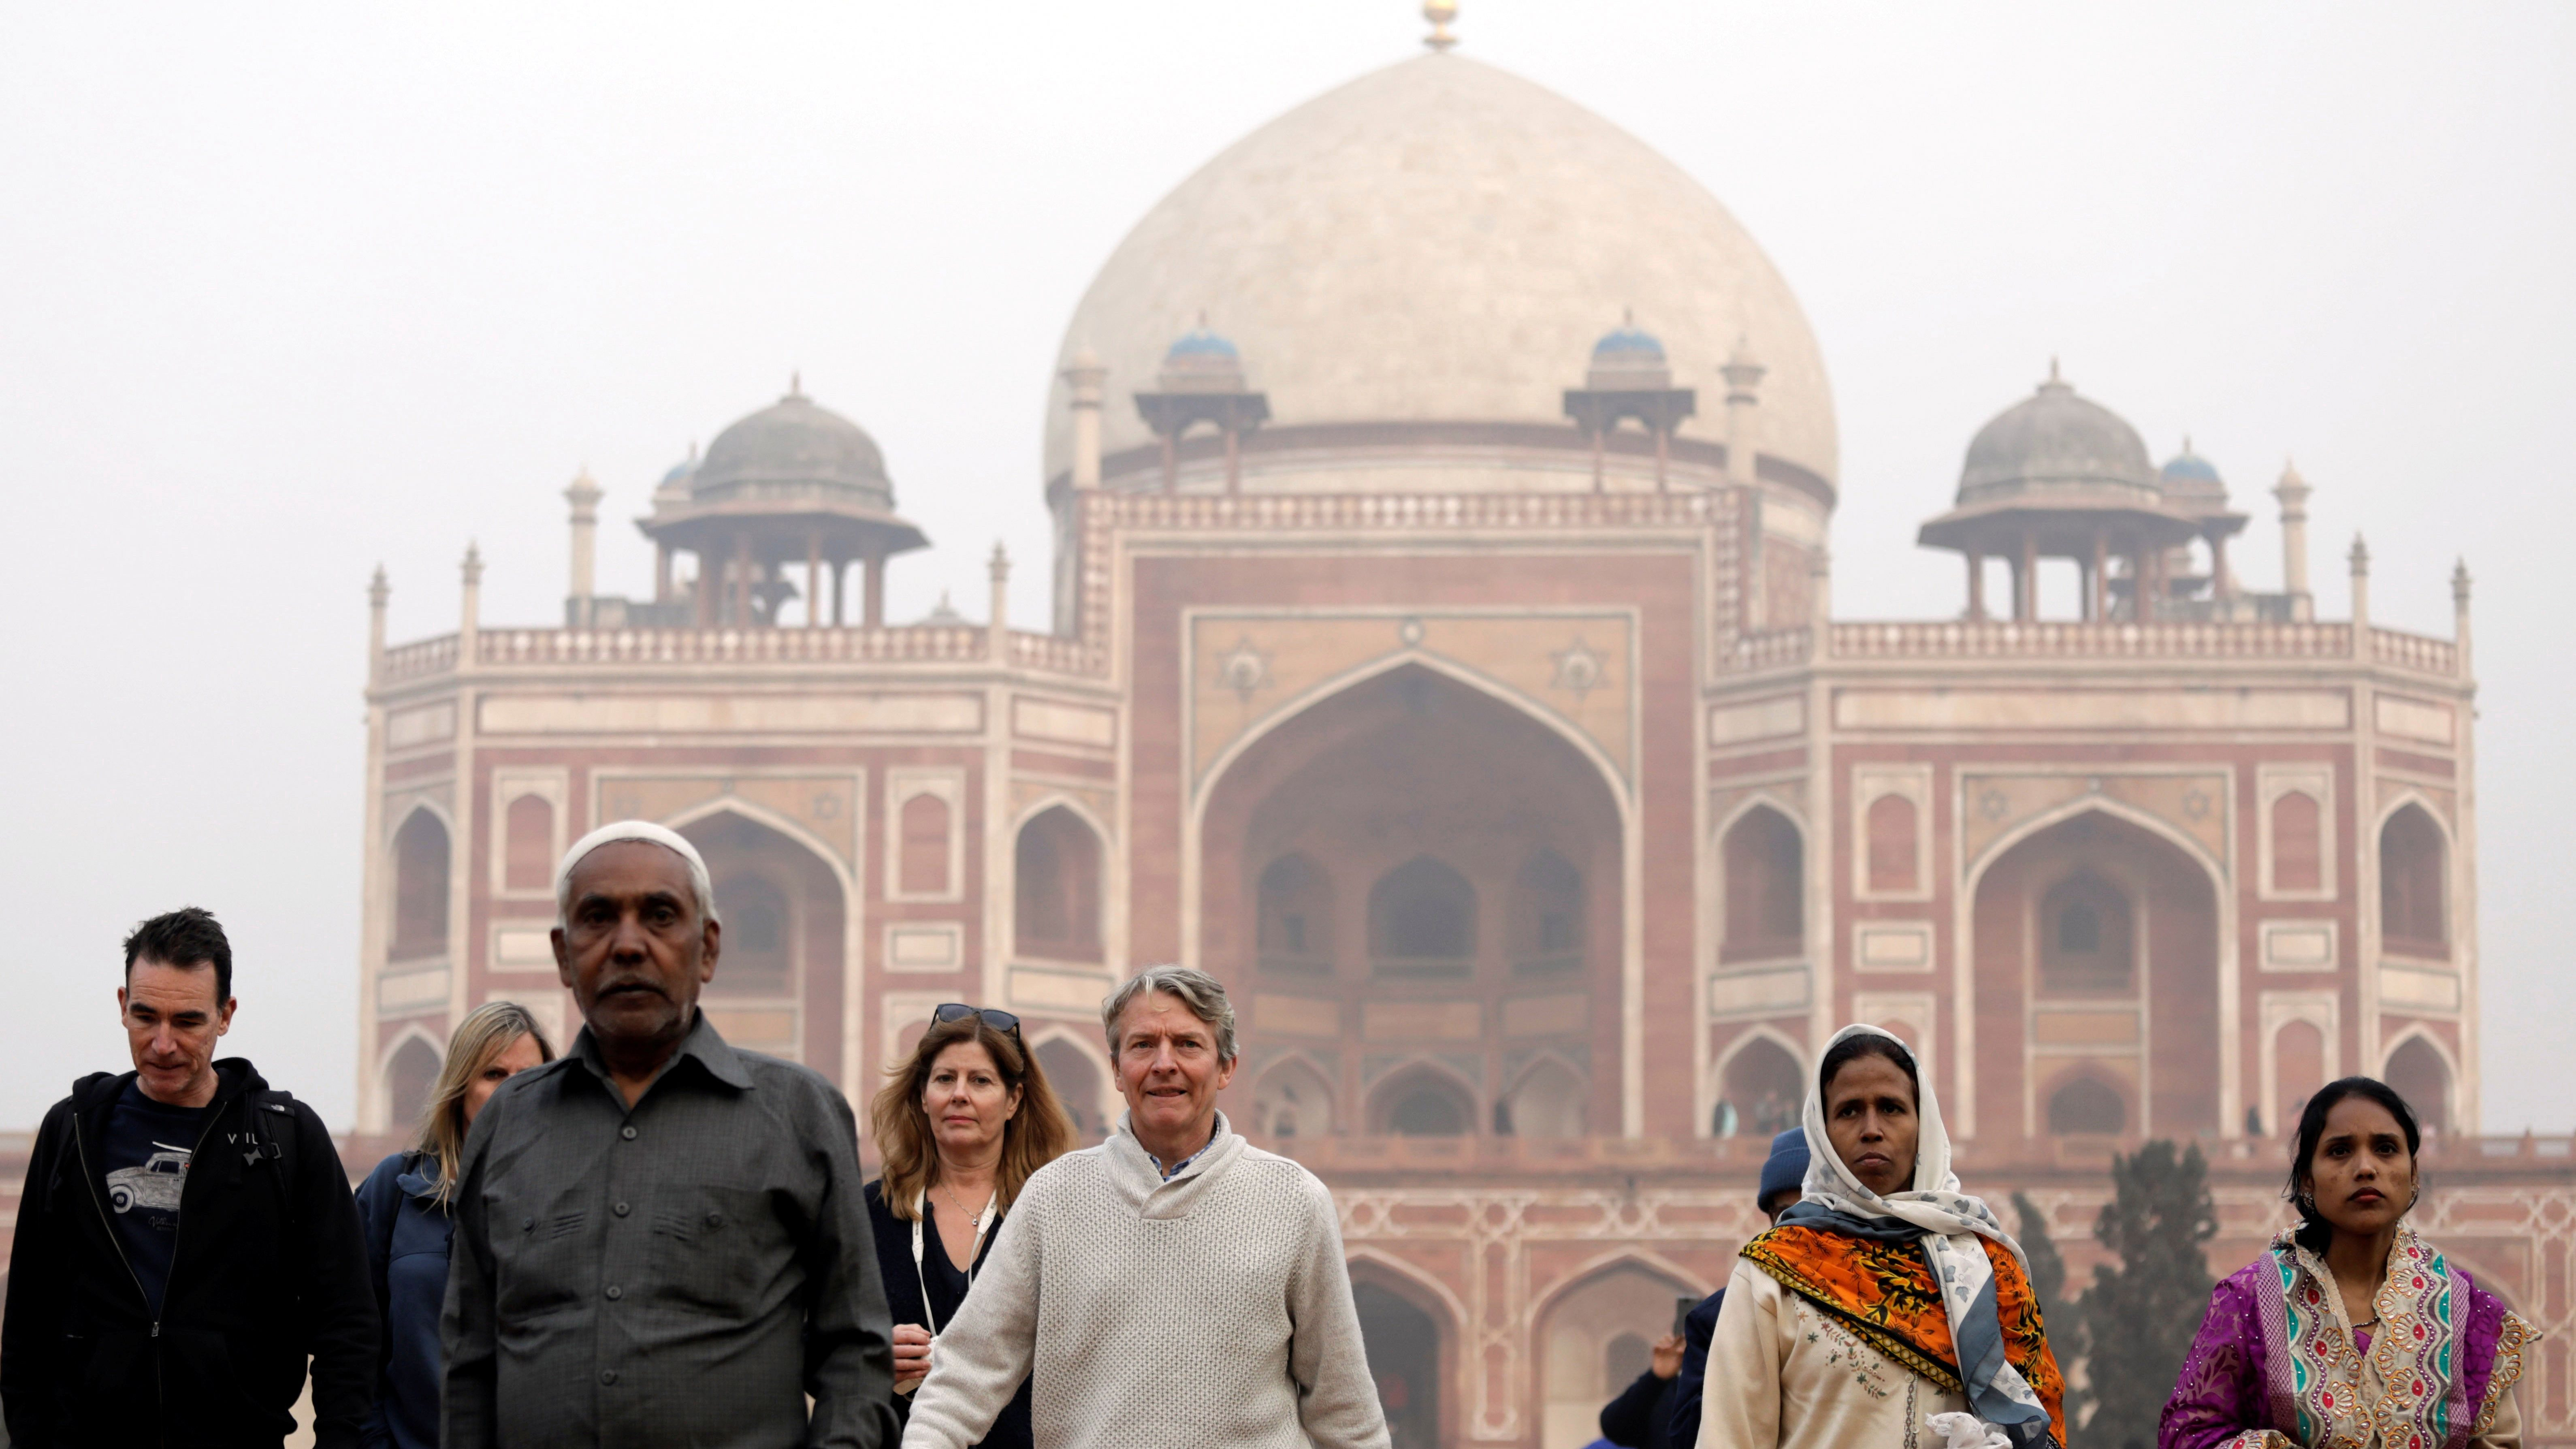 Domestic and foreign tourists walk in front of Humayun's Tomb, one of the tourist destinations in New Delhi, India, January 1, 2018. Picture taken January 1, 2018. REUTERS/Saumya Khandelwal - RC19C23785E0